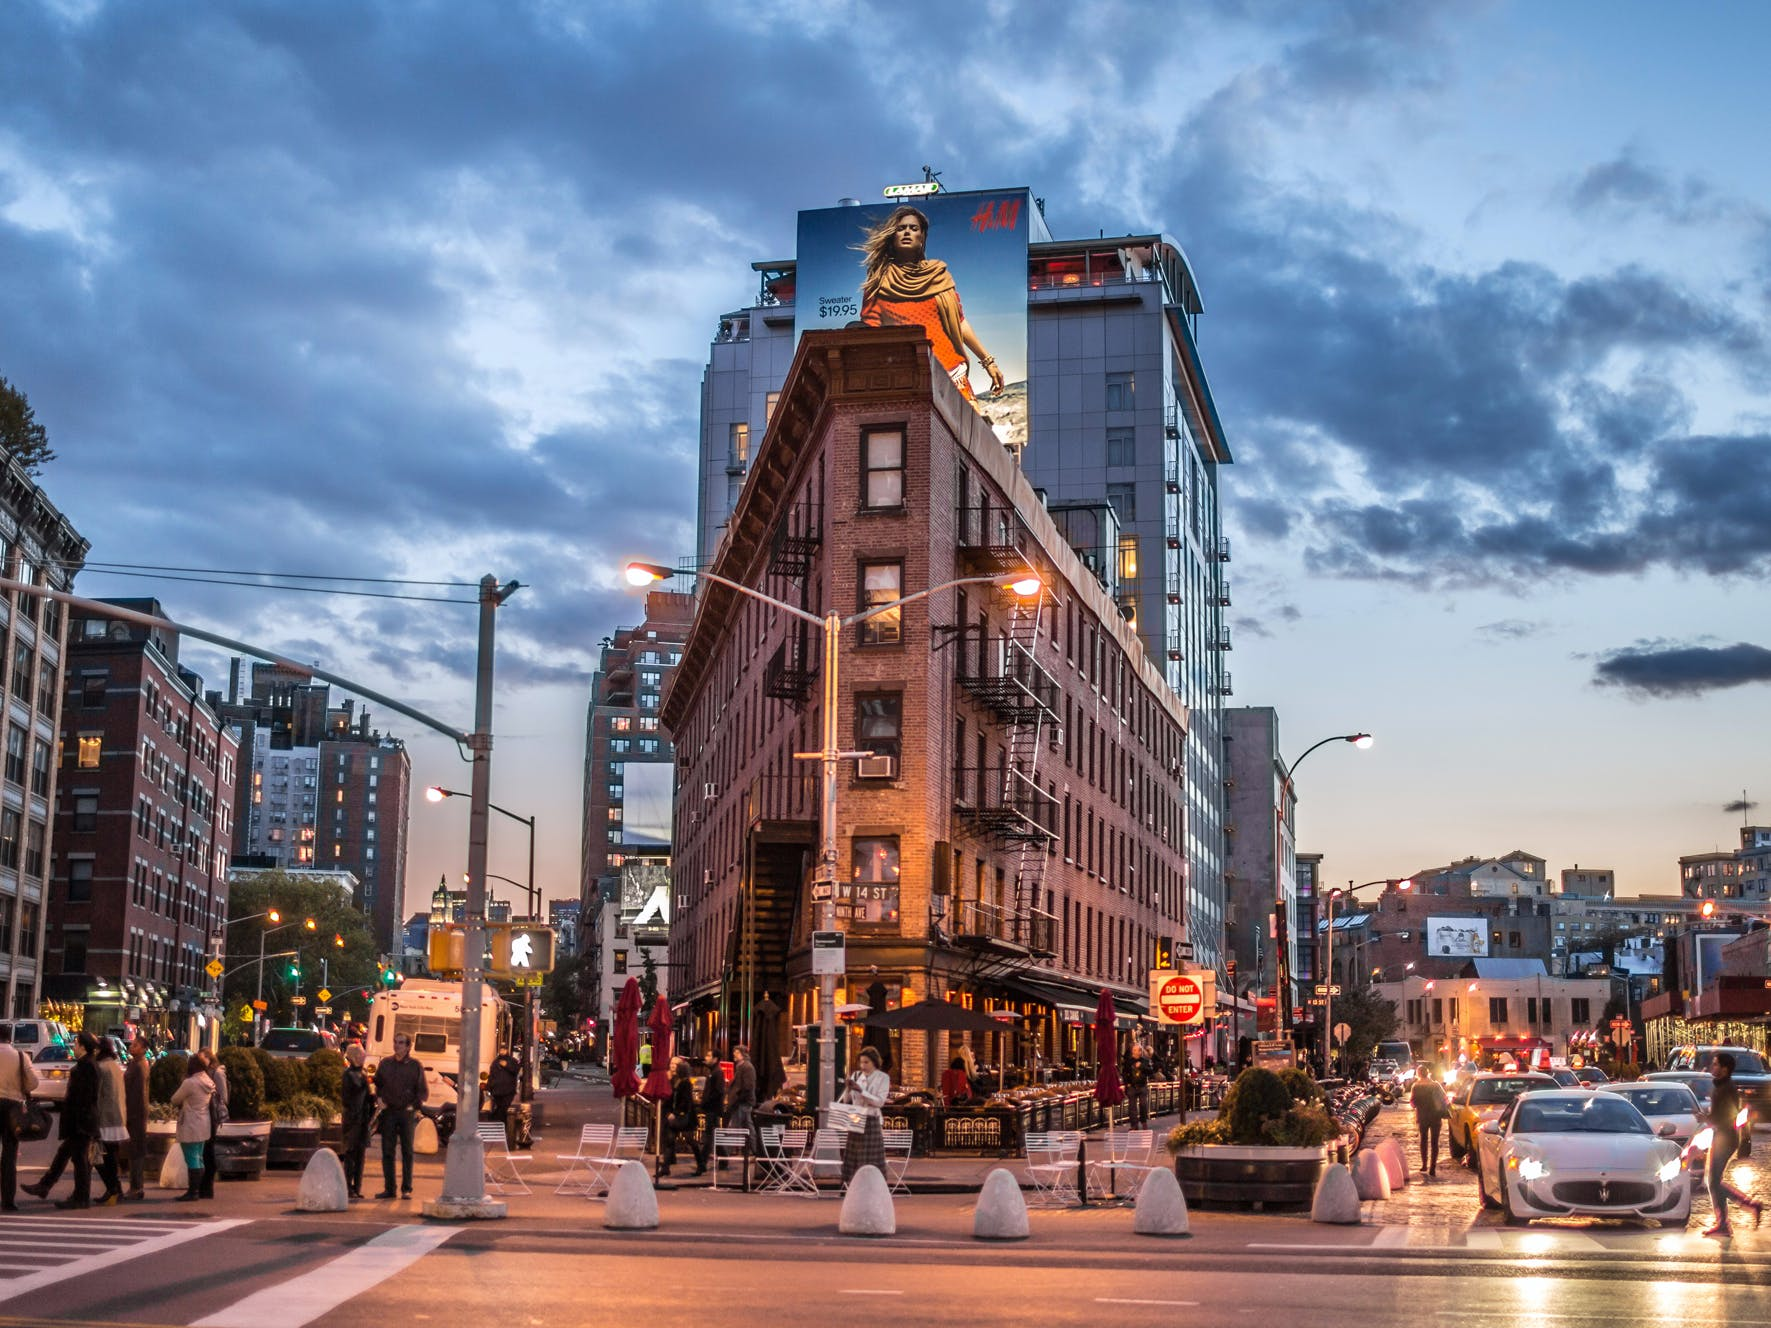 Meatpacking and the High Line, Industrial Heritage at a Crossroads: Walking Tour